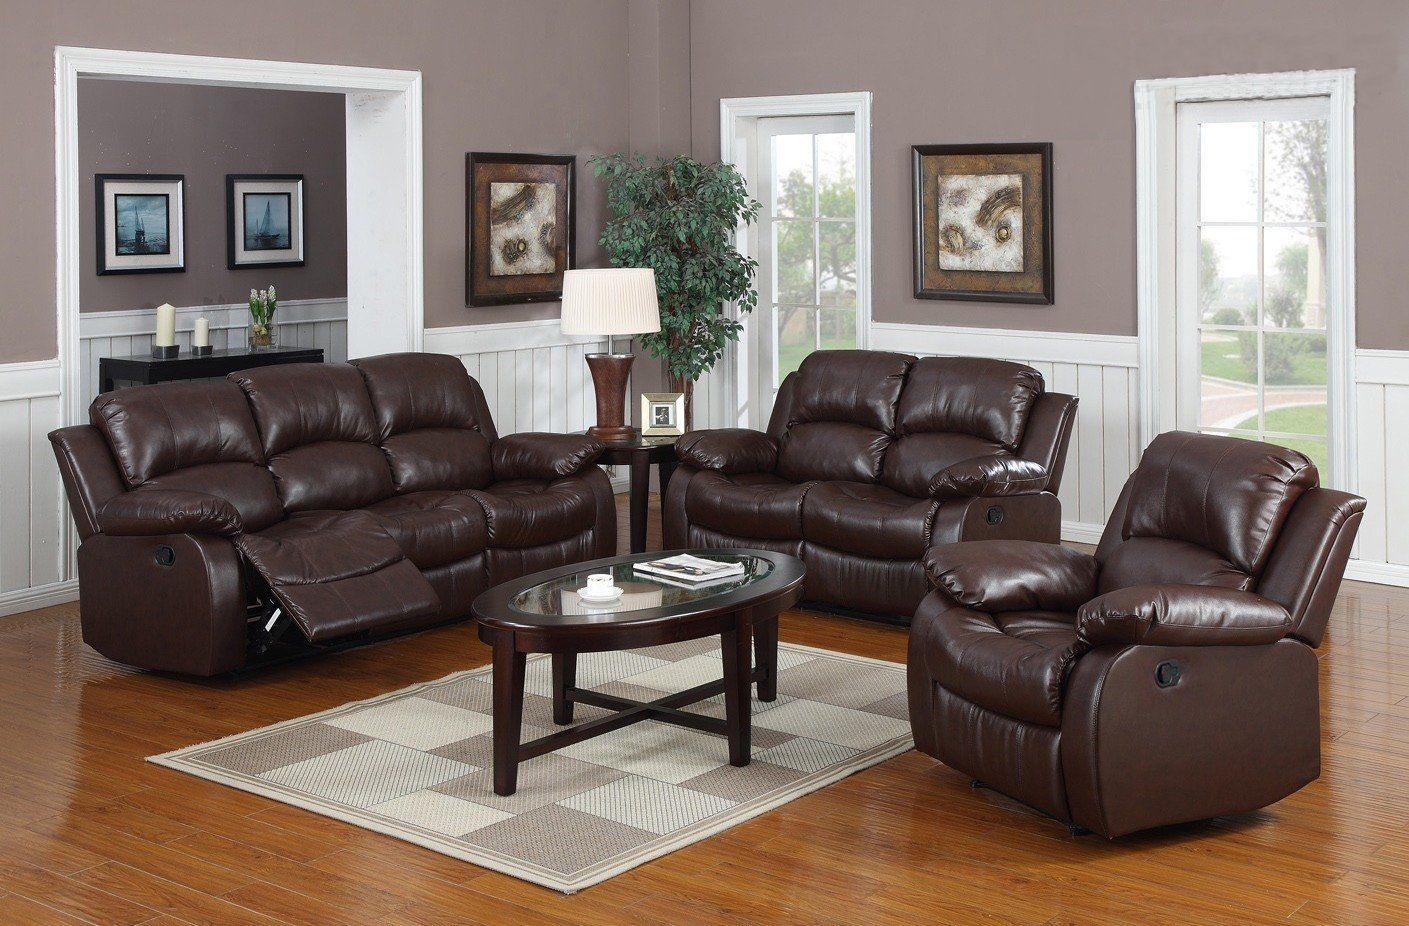 Huntington 3 Pc Bonded Leather Sofa Loveseat Chair Set With 5 Recliners Dimensions Leather Living Room Set Living Room Leather Living Room Sets Furniture